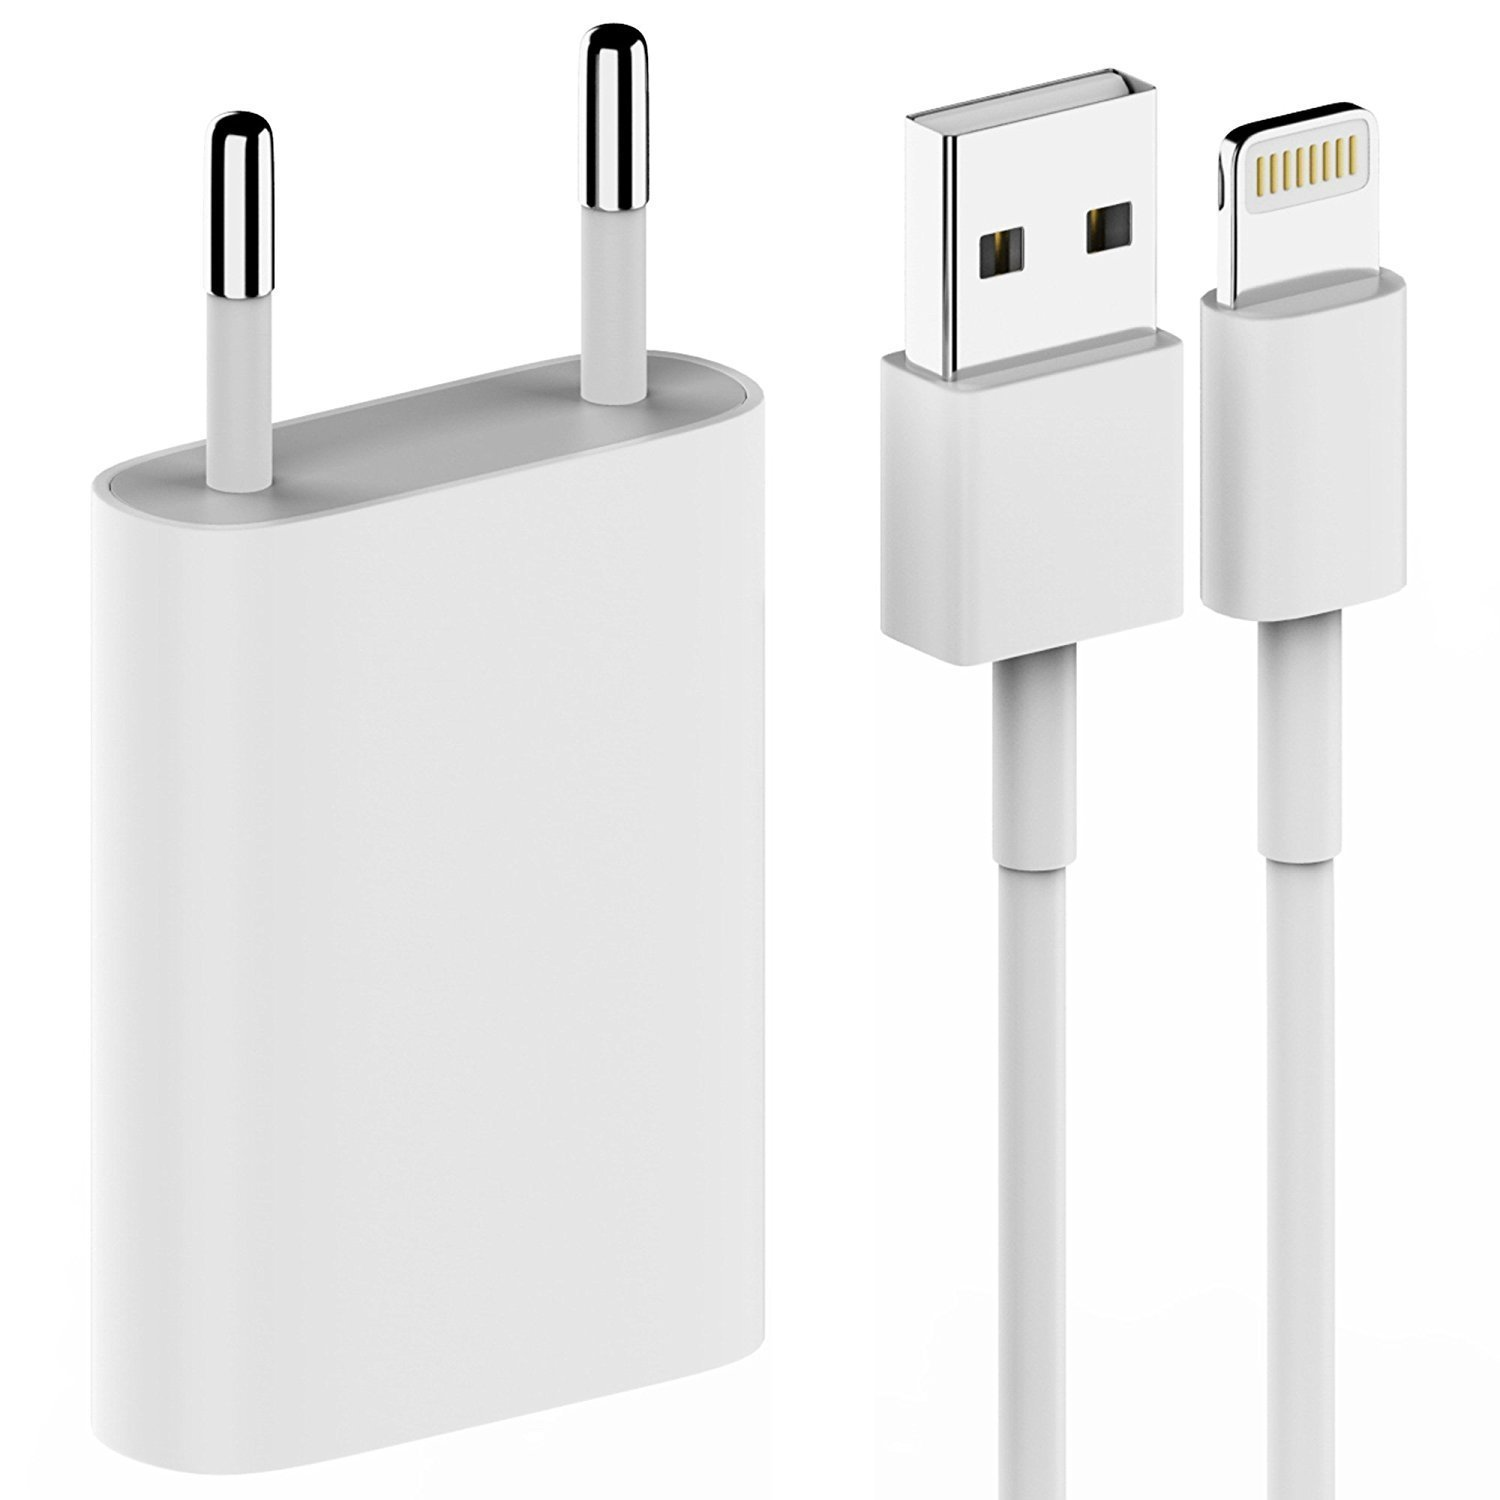 Cargador de batería para Apple Iphone original 1 a 5 W 1400 ...